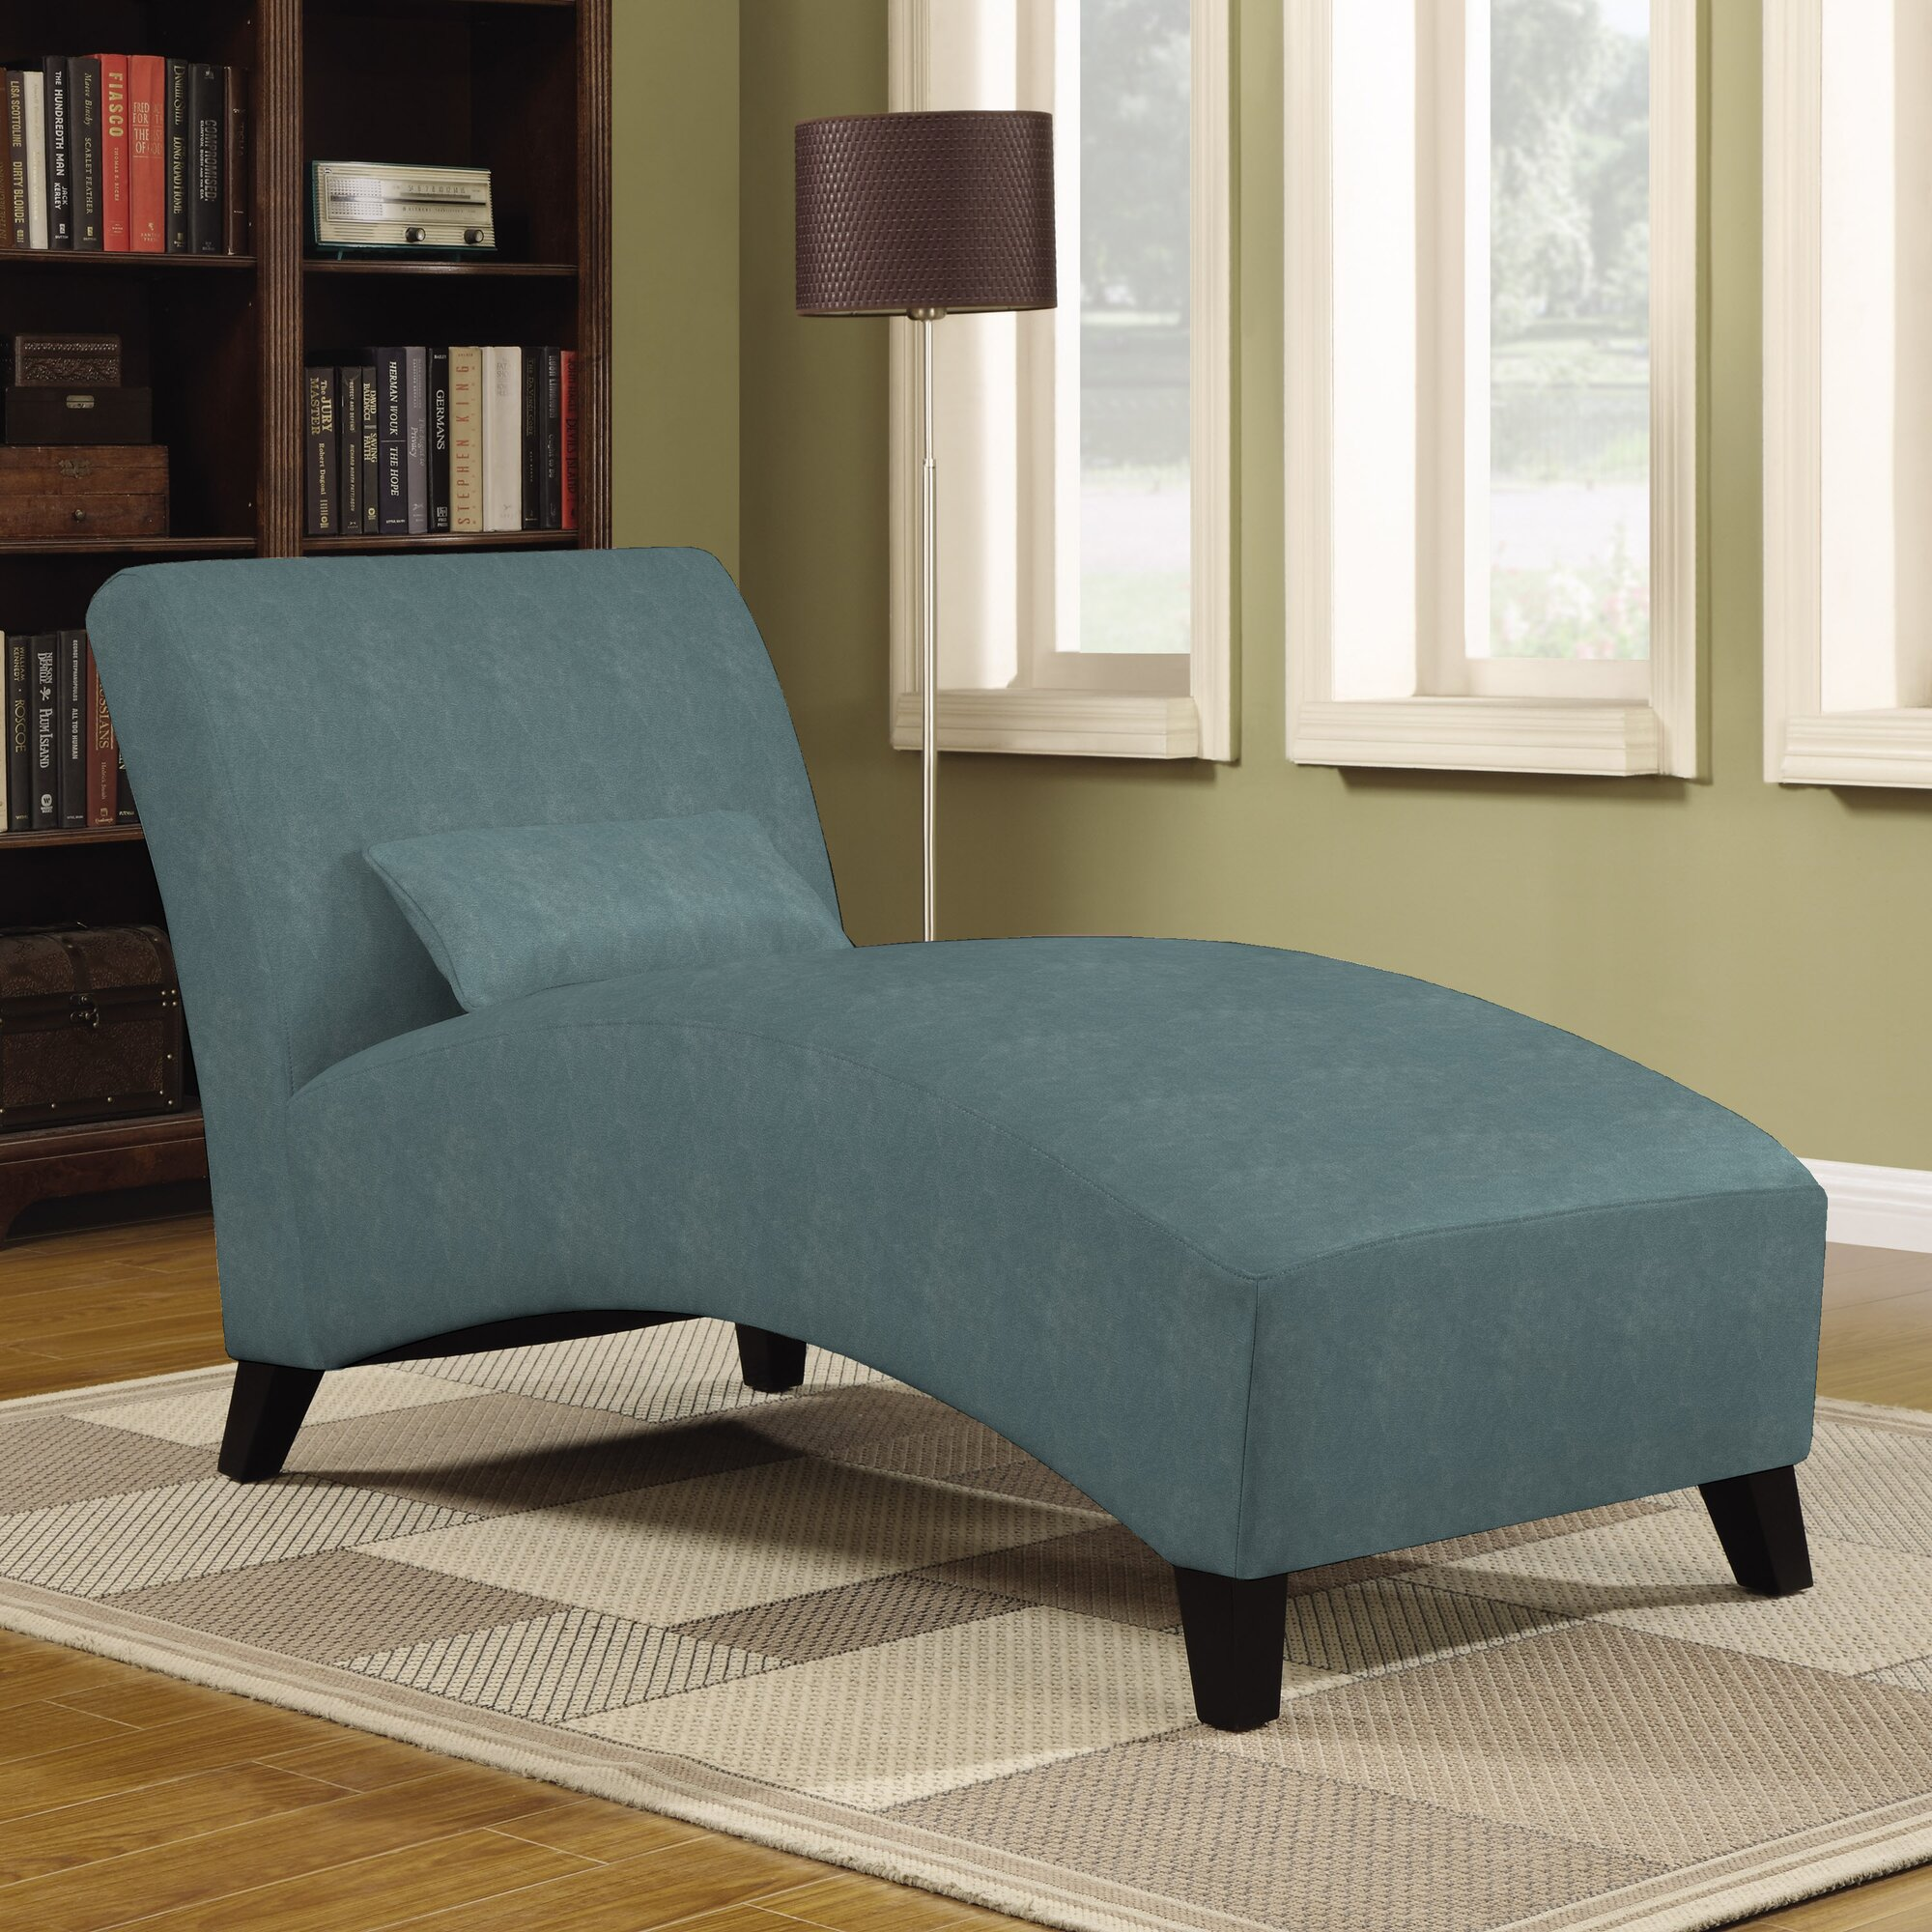 jules polyester chaise lounge - Living Room Chaise Lounge Chairs